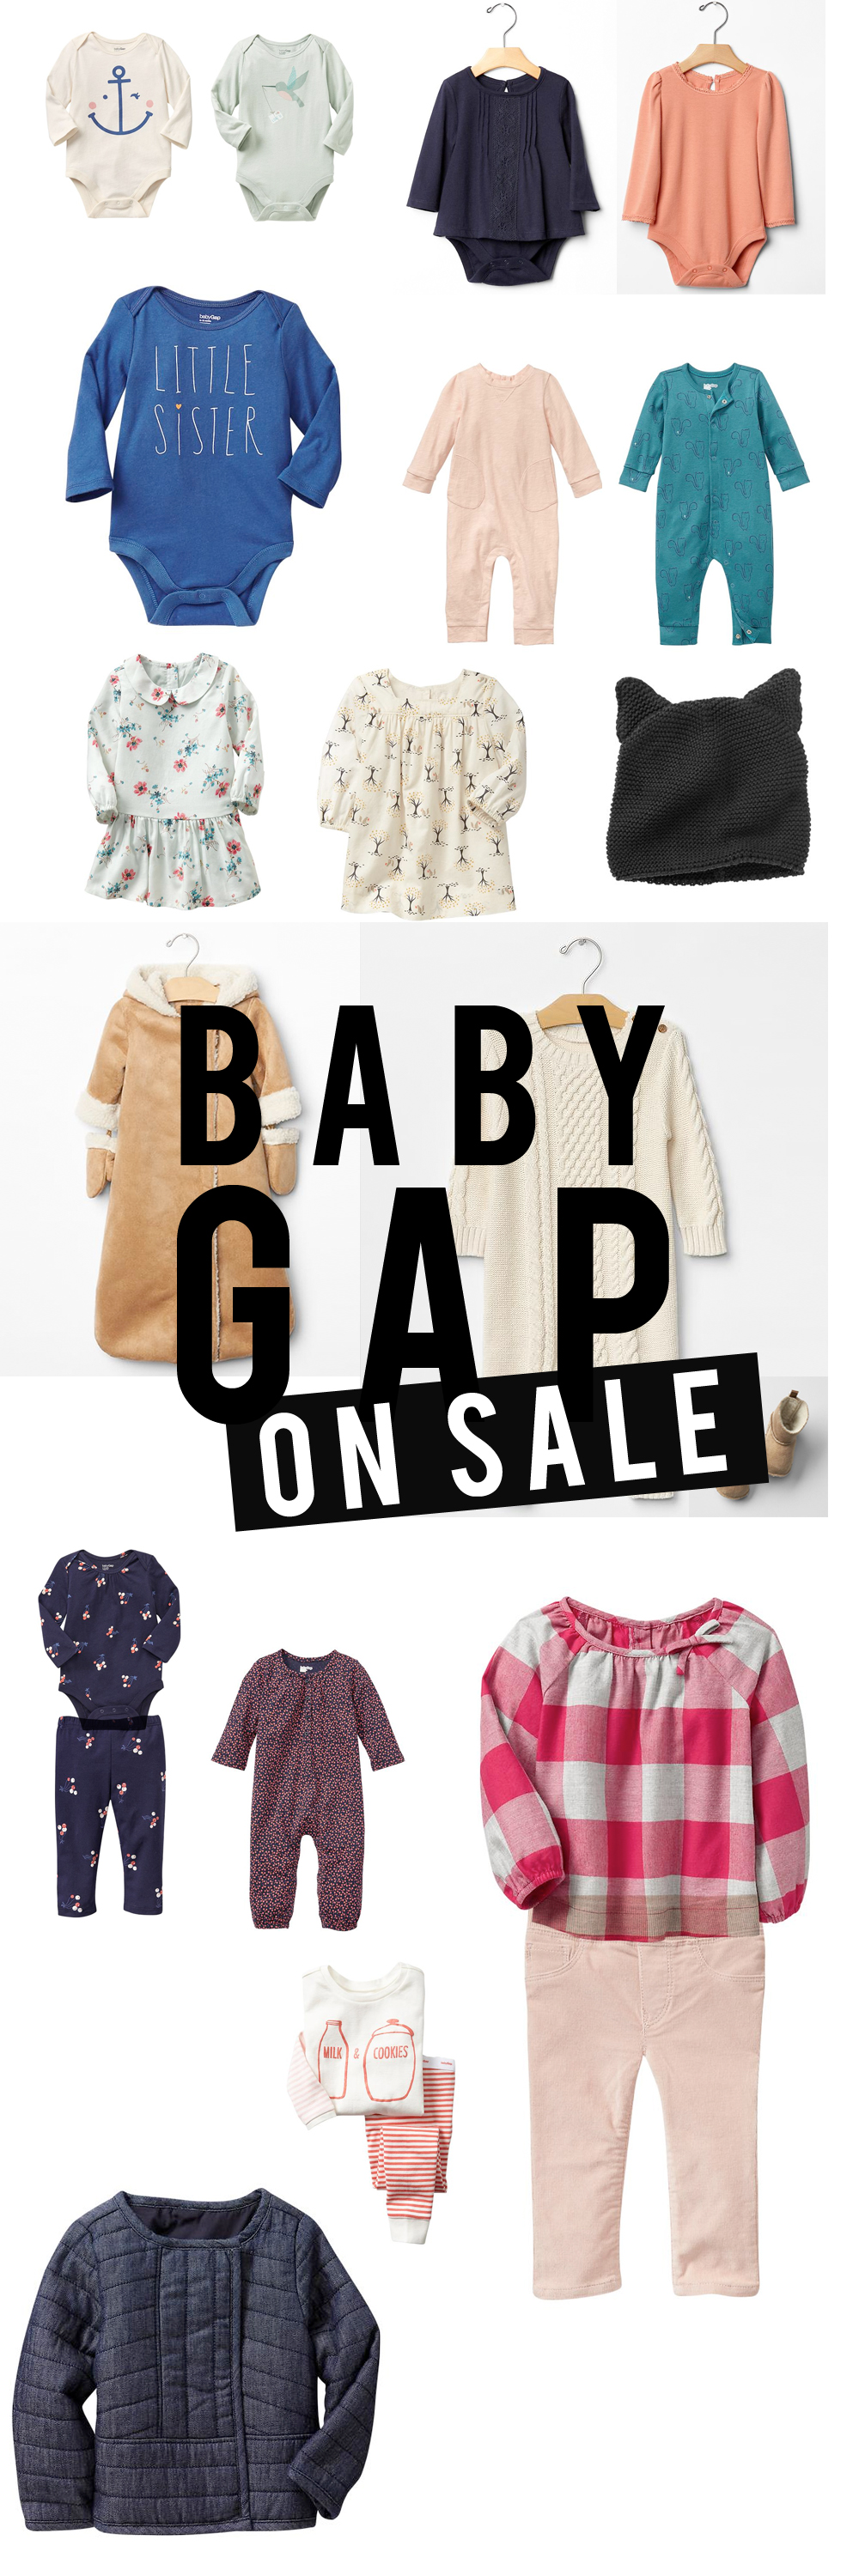 shop_gap_small